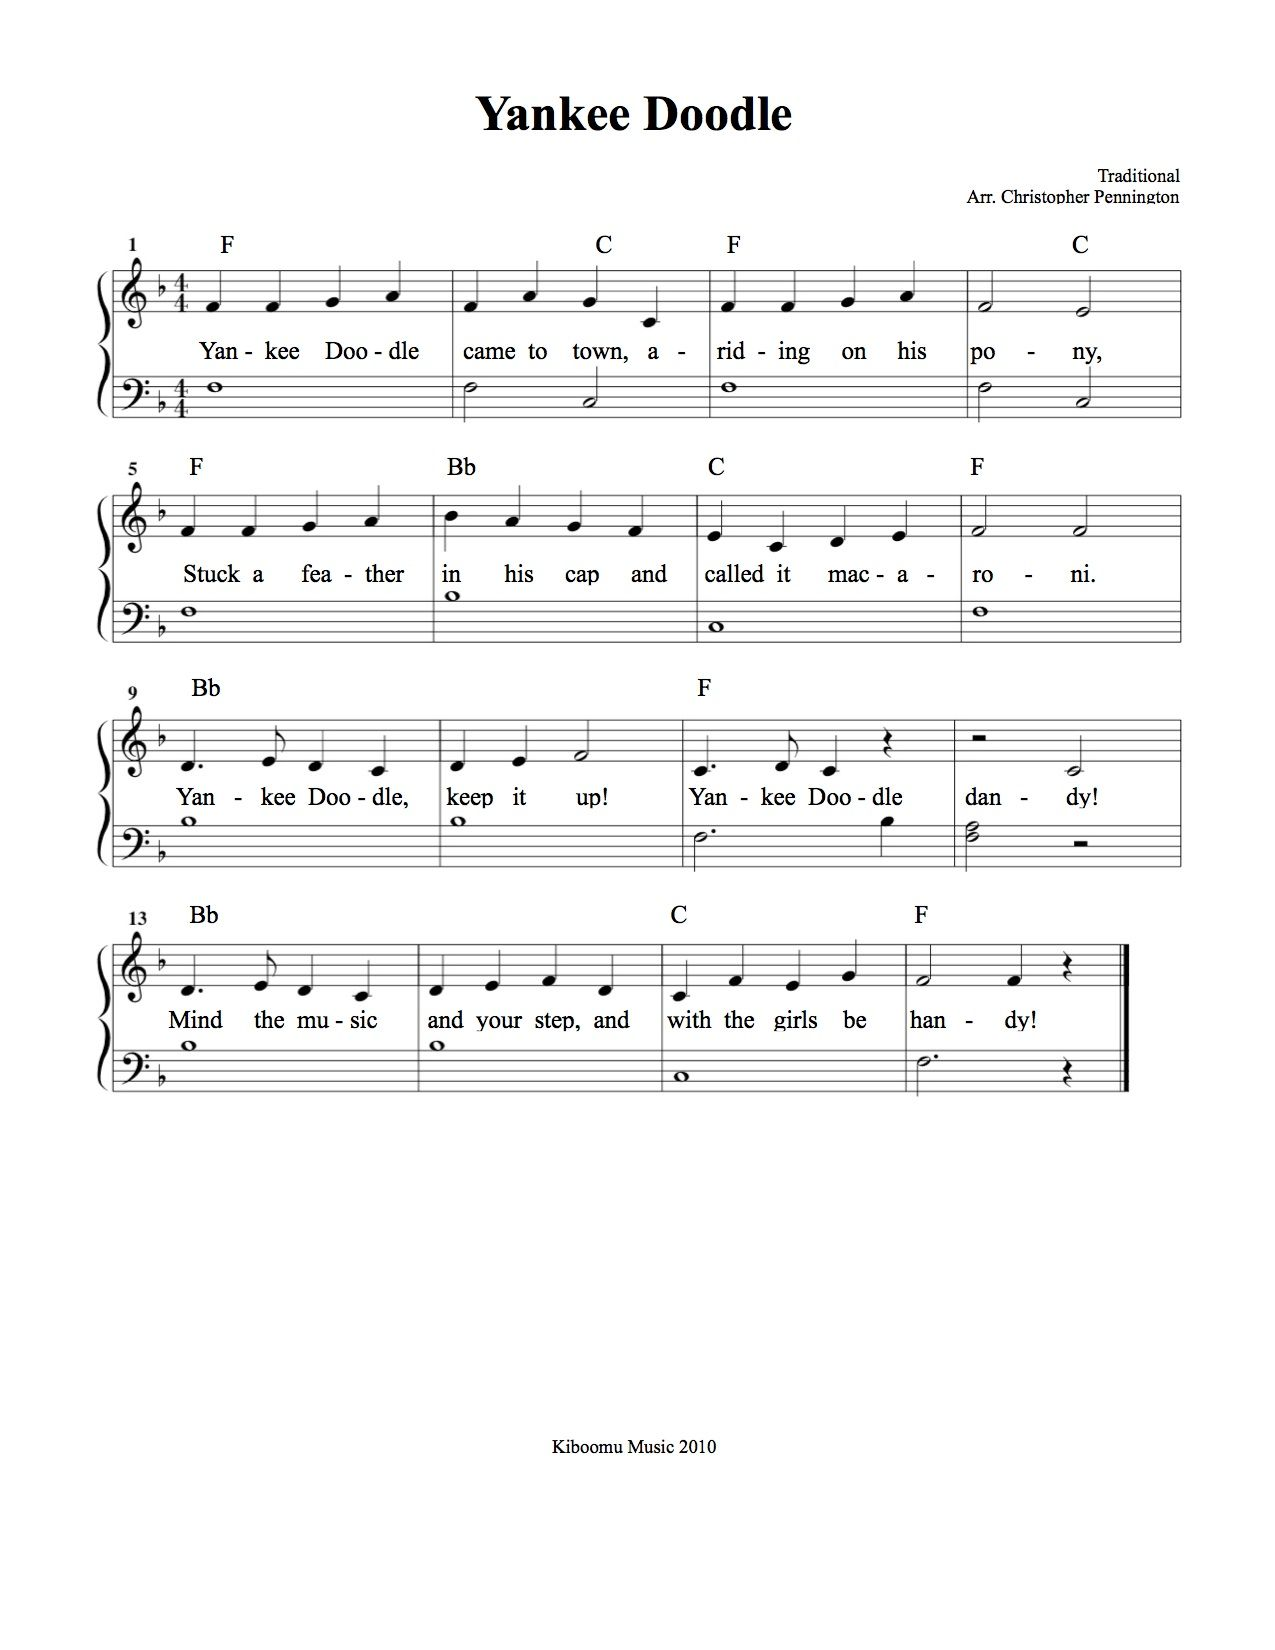 Yankee Doodle Sheet Music And Song From Kiboomu